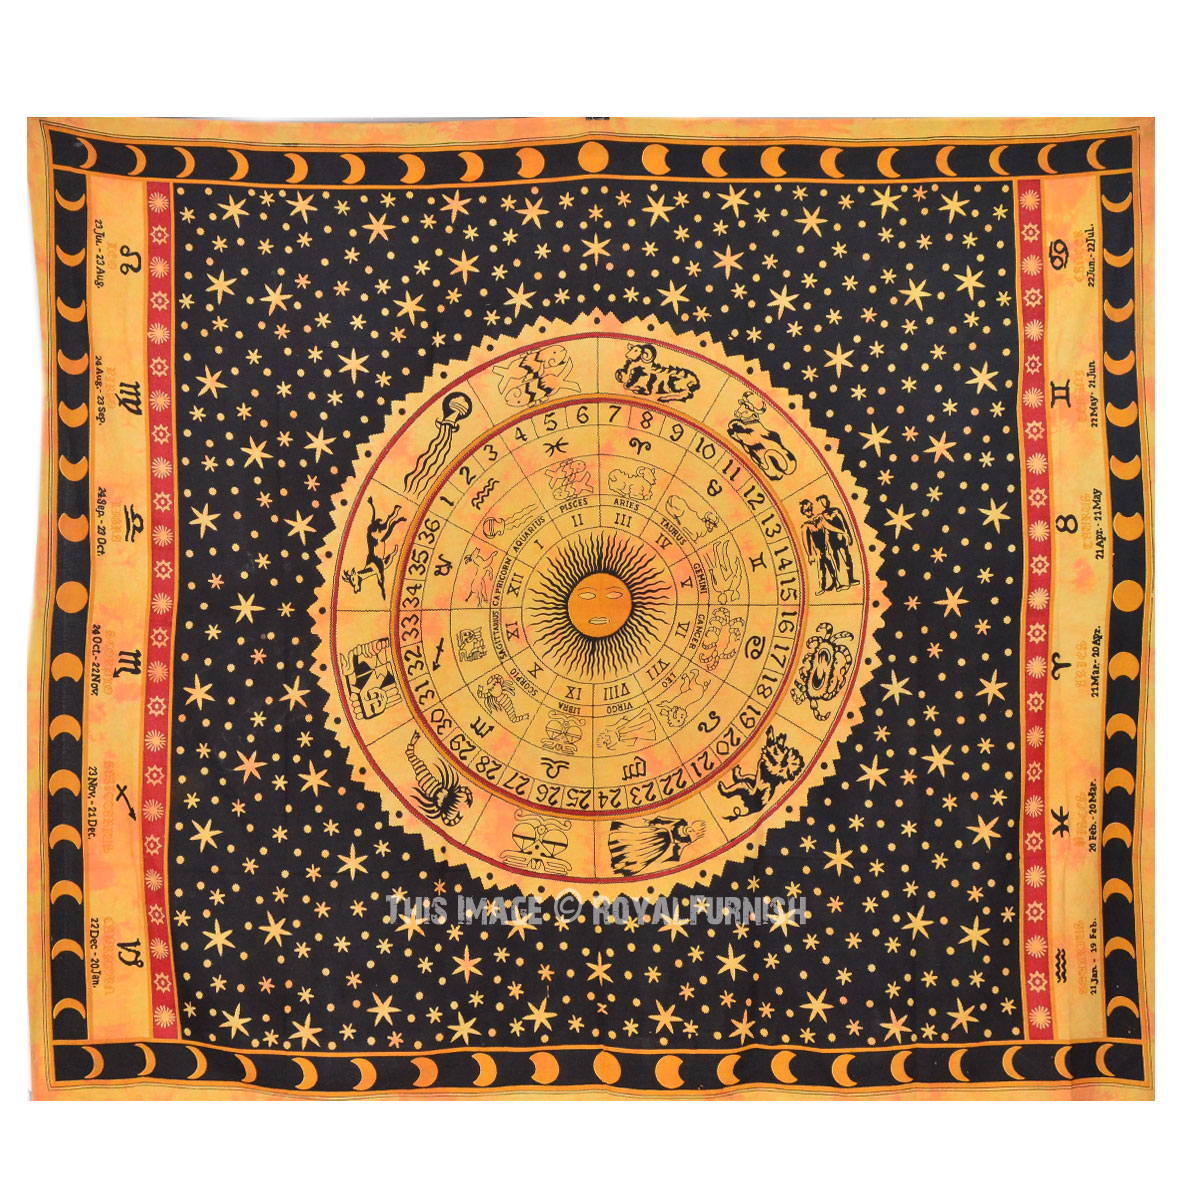 Large Yellow Zodiac Tapestry Queen Horoscope Astrology